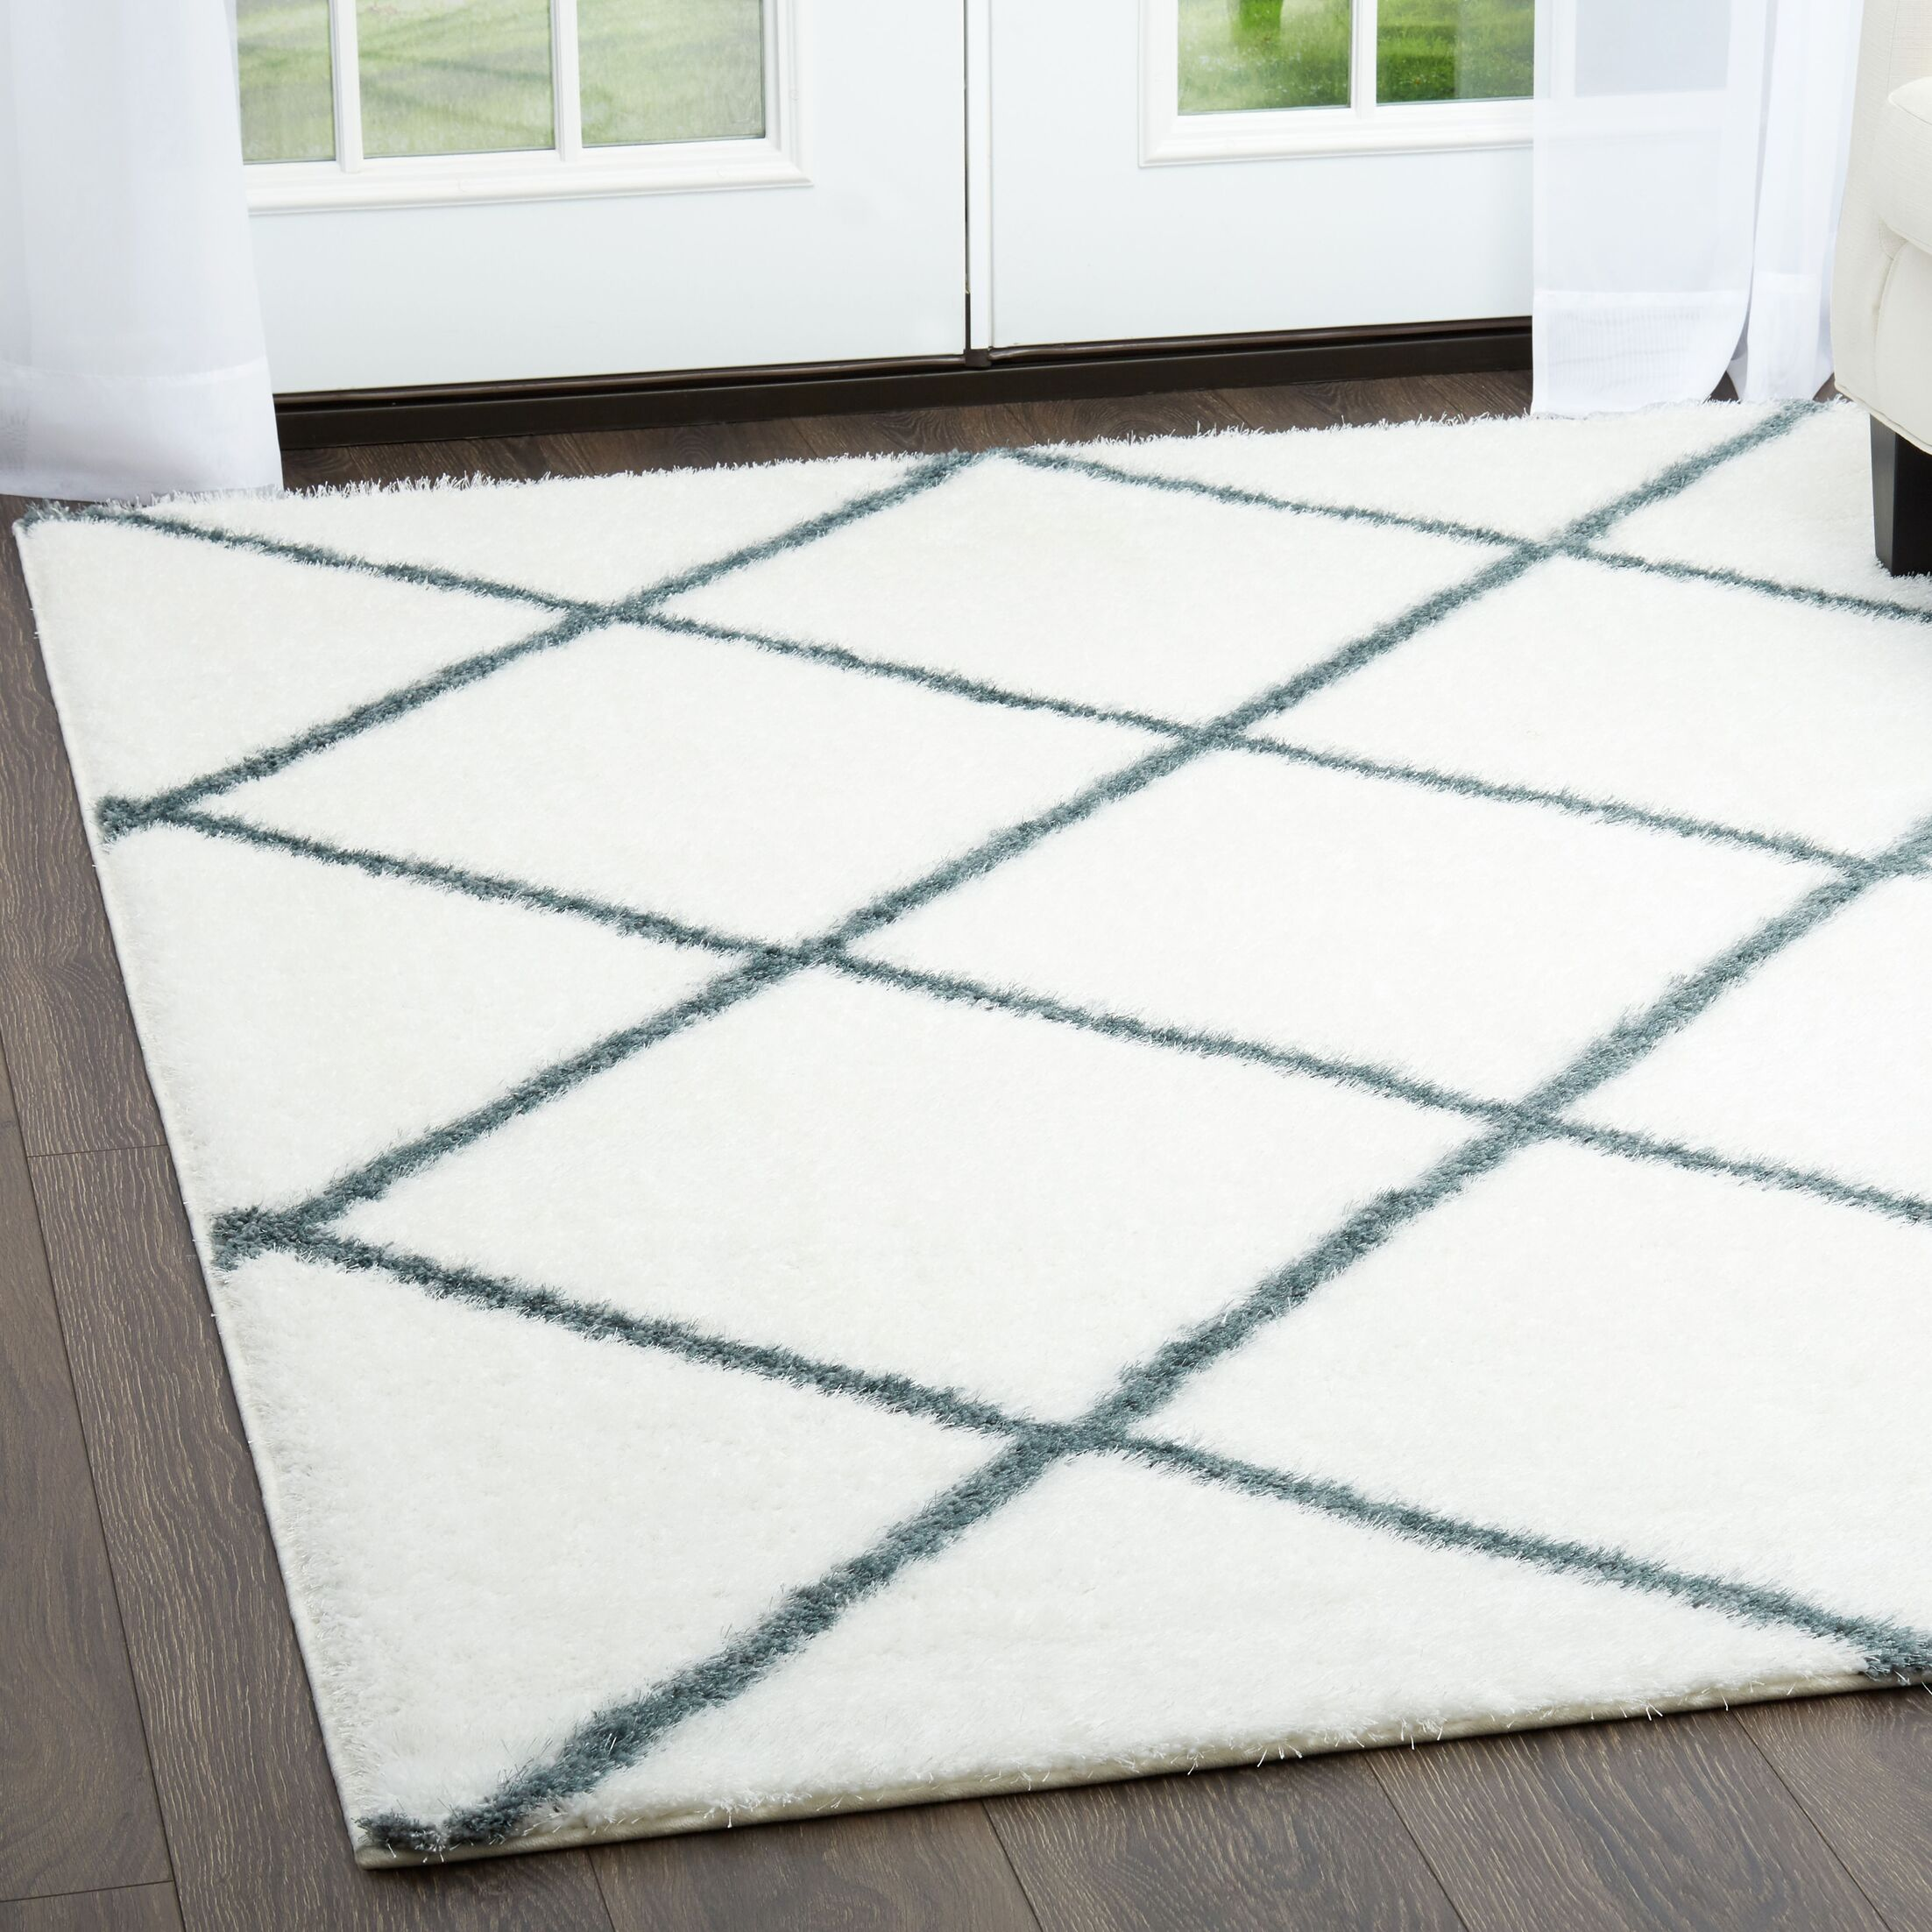 Glenpool Shimmery Shag Ivory/Blue Area Rug Rug Size: Rectangle 7'9